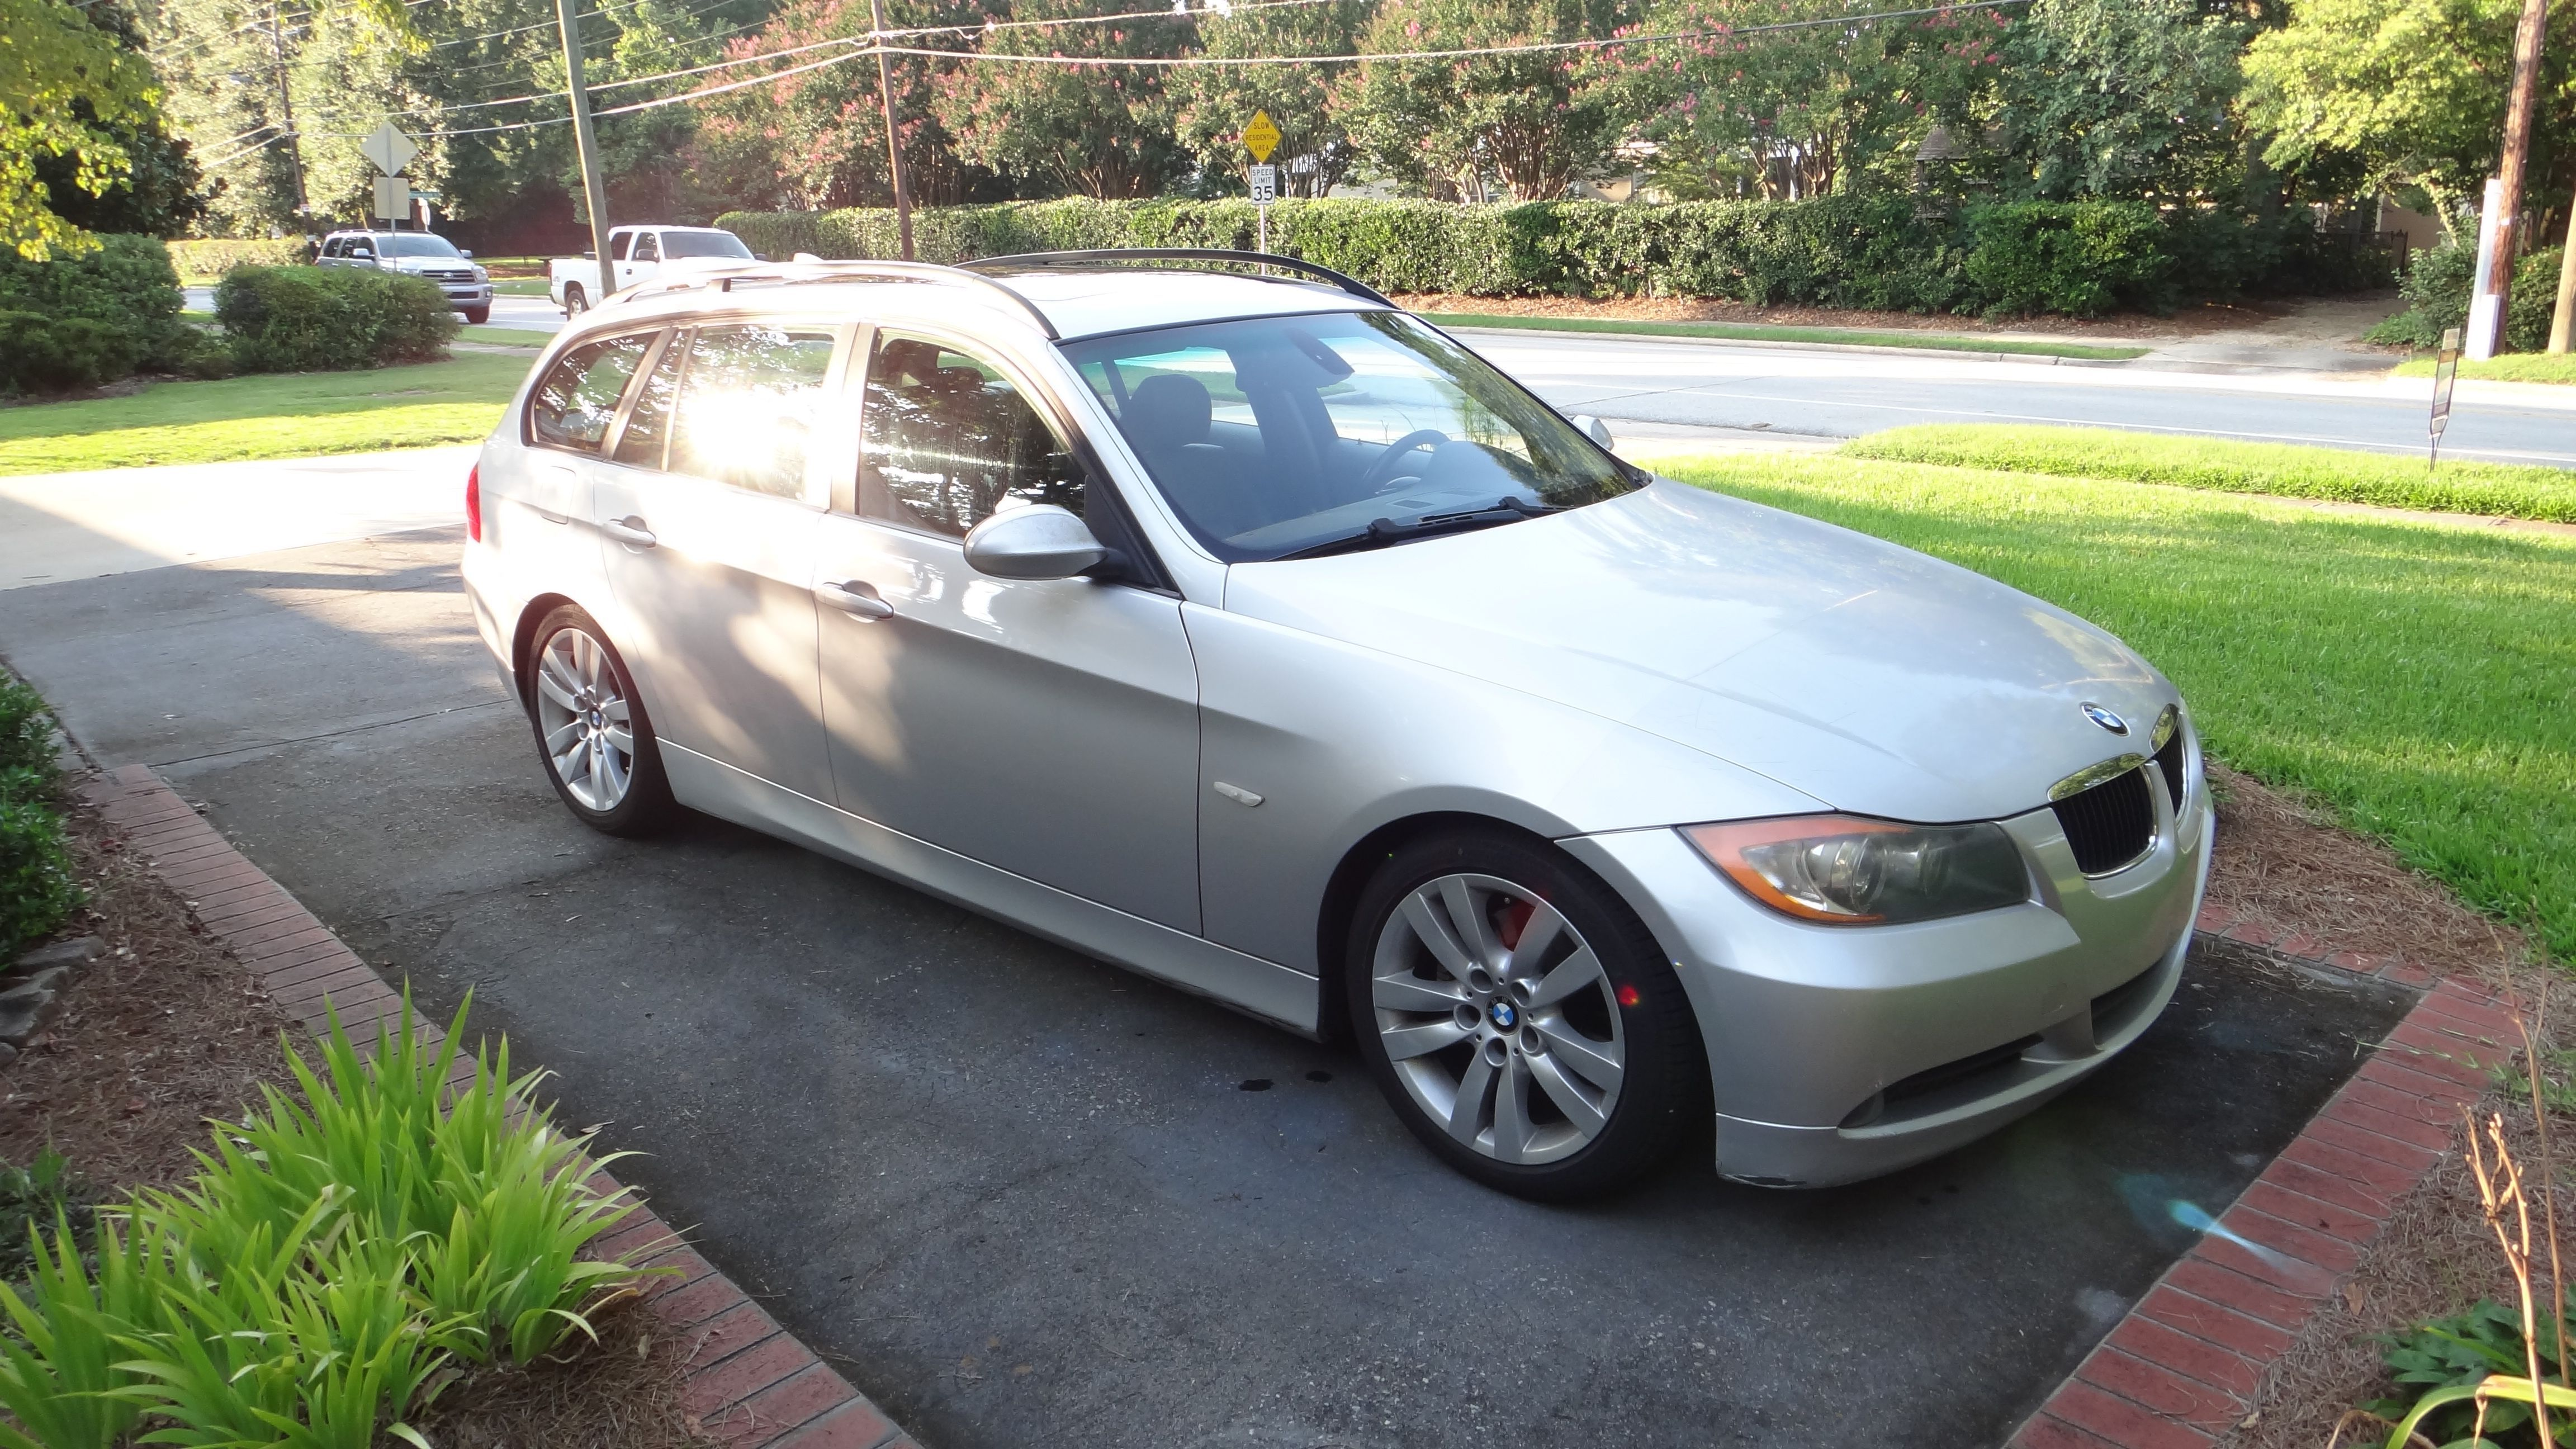 2007 bmw 328i wagon loved this car but had to sell it when i moved rh pinterest com  2007 bmw 328i a/c compressor